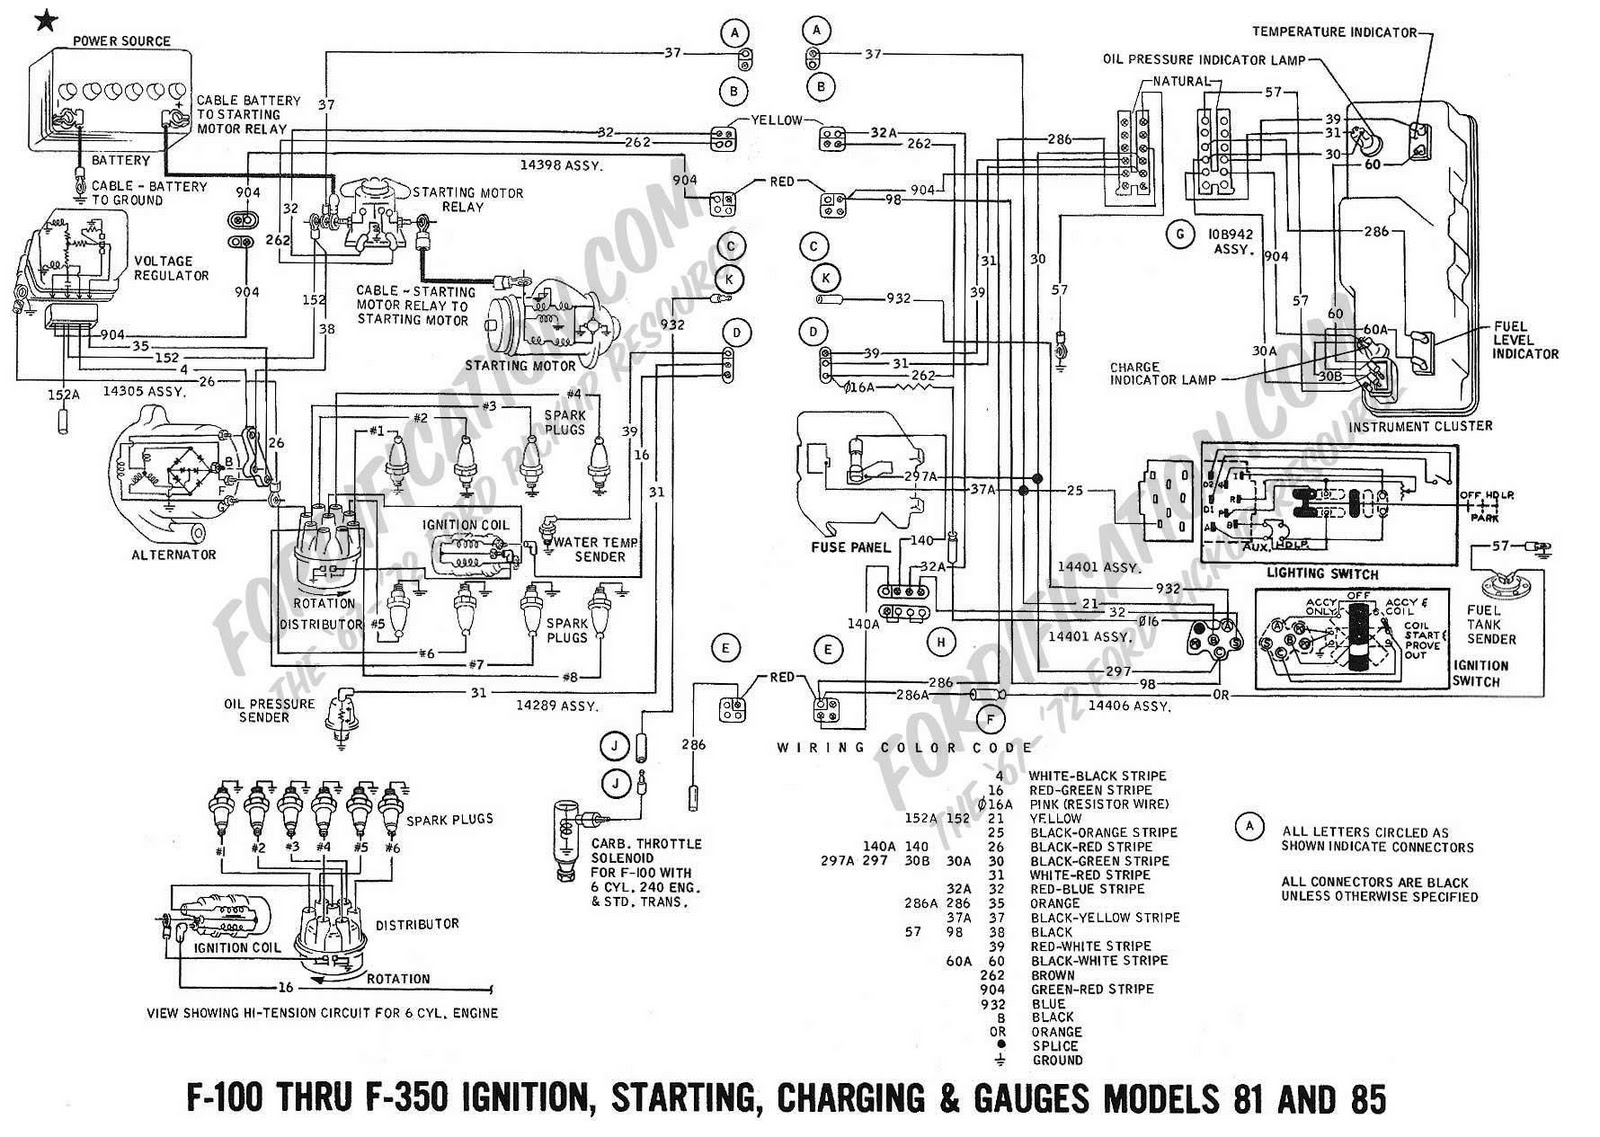 hight resolution of 1968 galaxie wiring diagram wiring diagram schematics 1977 jeep cj7 wiring diagram 1977 ford ltd wiring